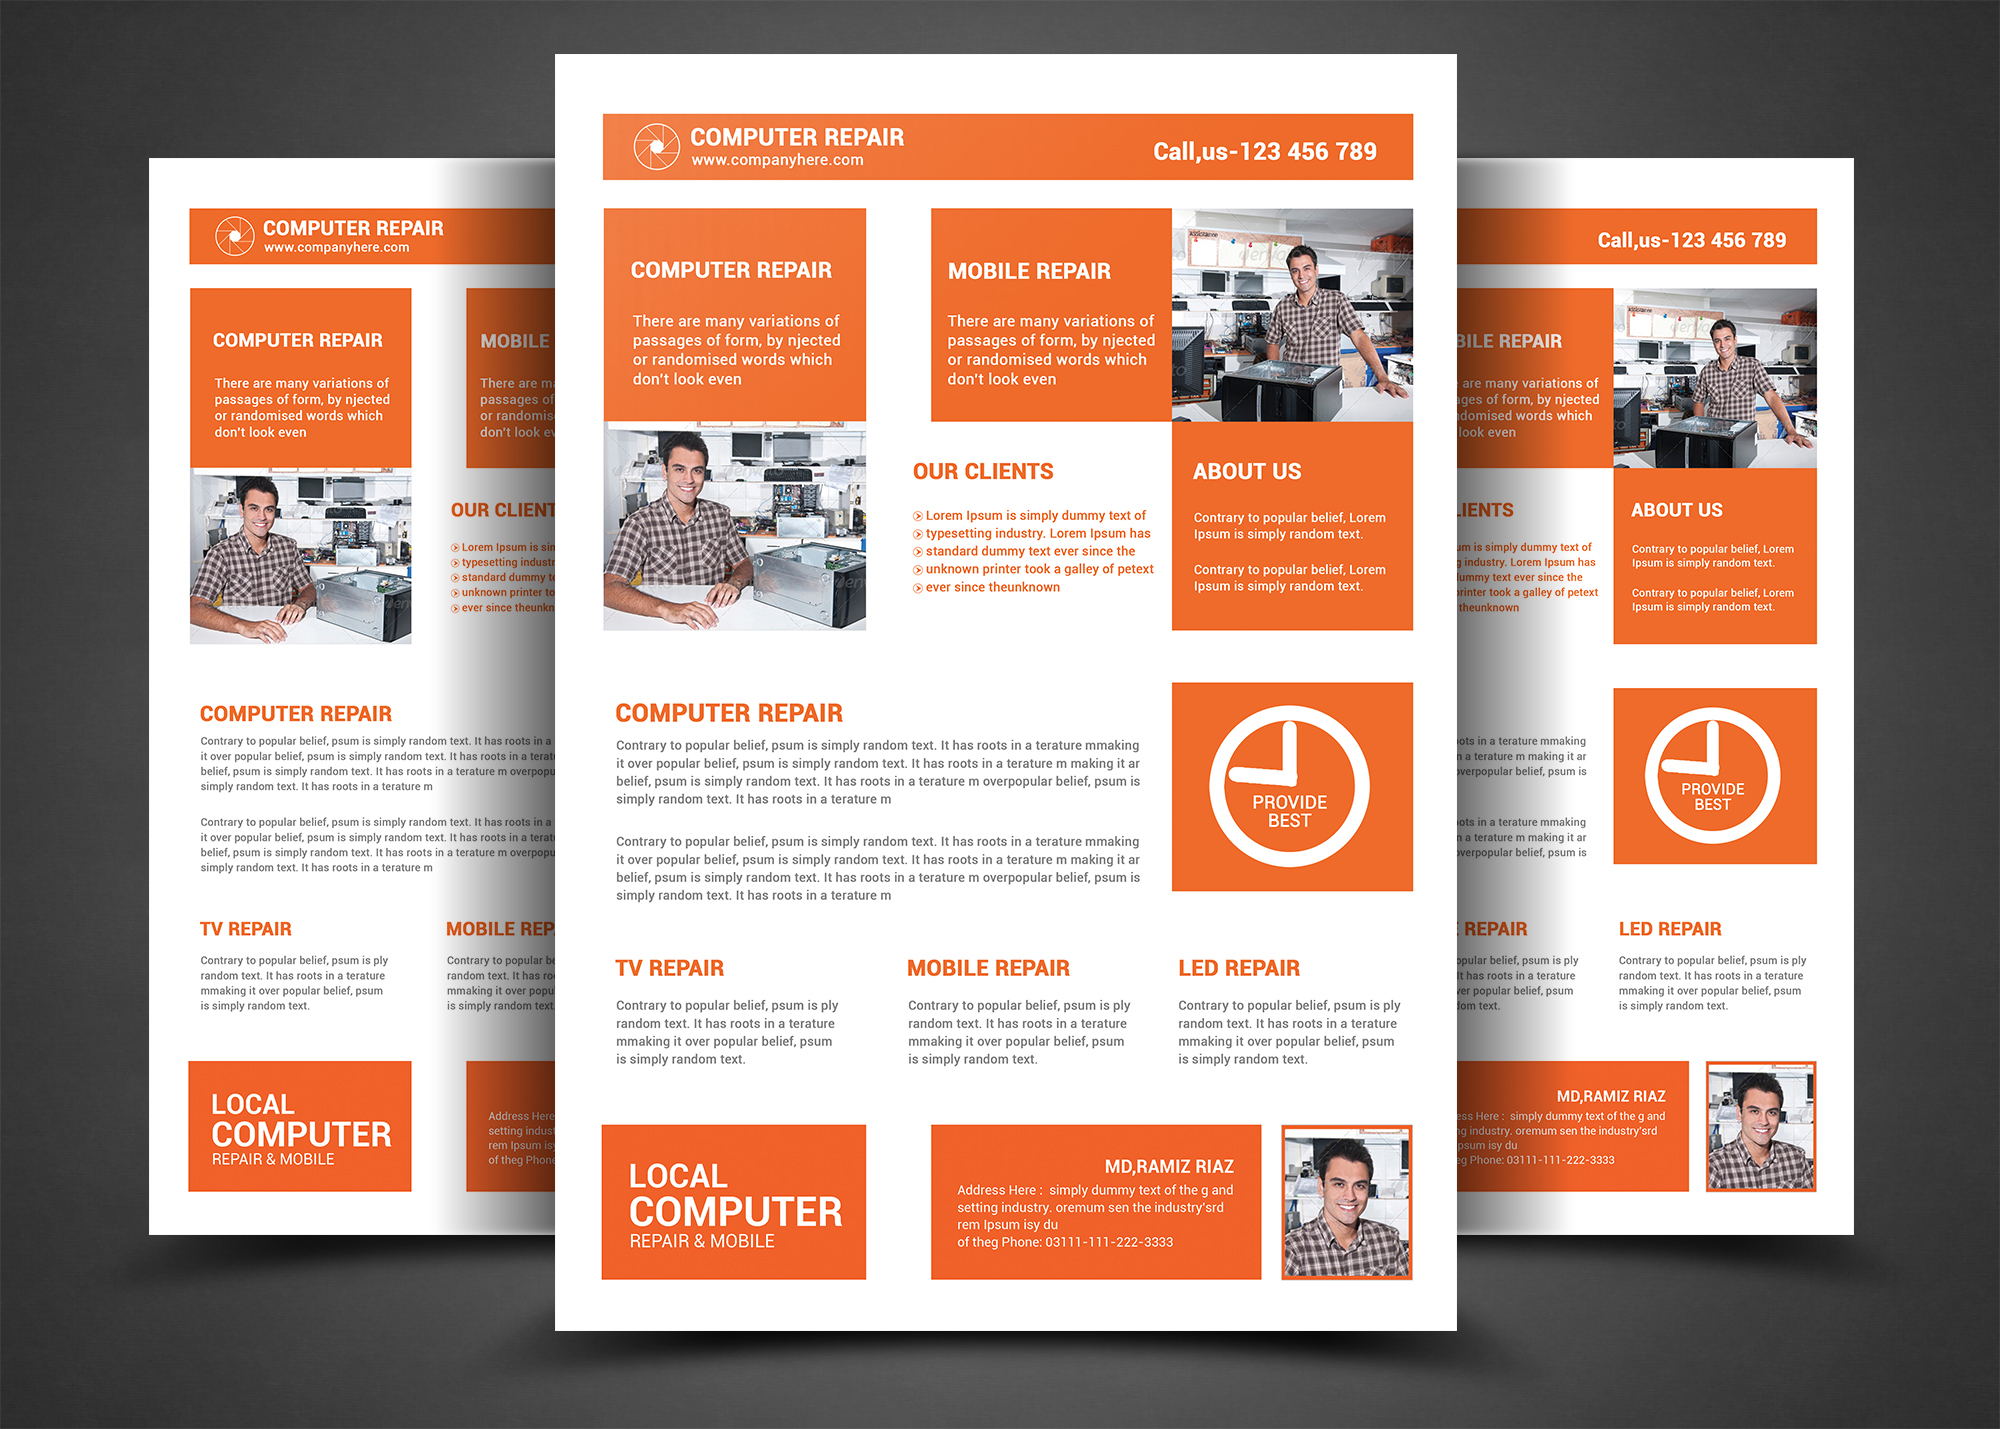 Computer Repair Flyer Template | 20 Computer Repair Flyer Pictures And Ideas On Meta Networks